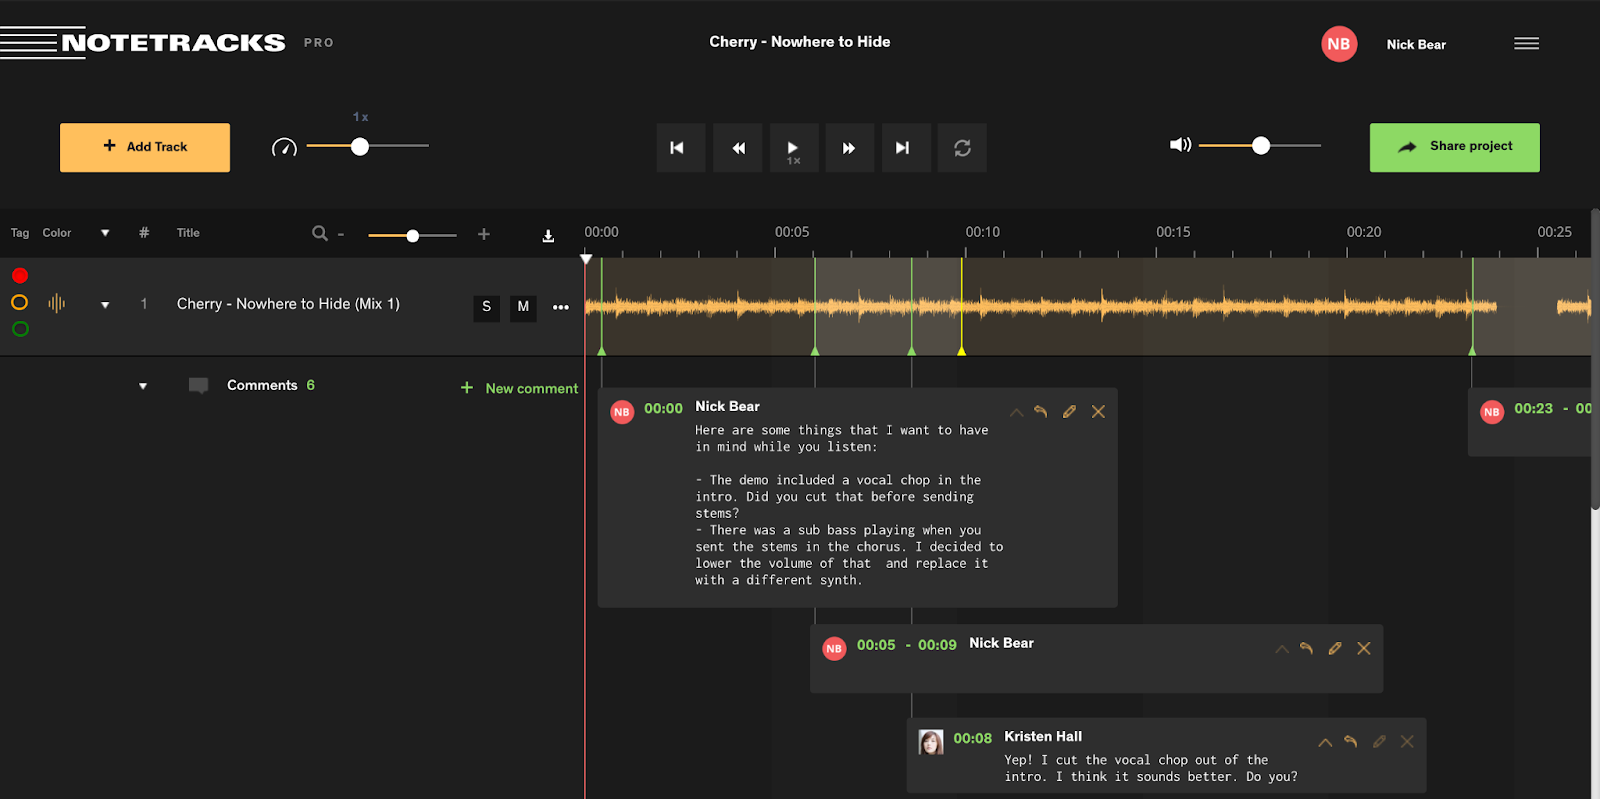 Notetracks Pro dashboard with song feedback pinned to the timeline of a demo song.